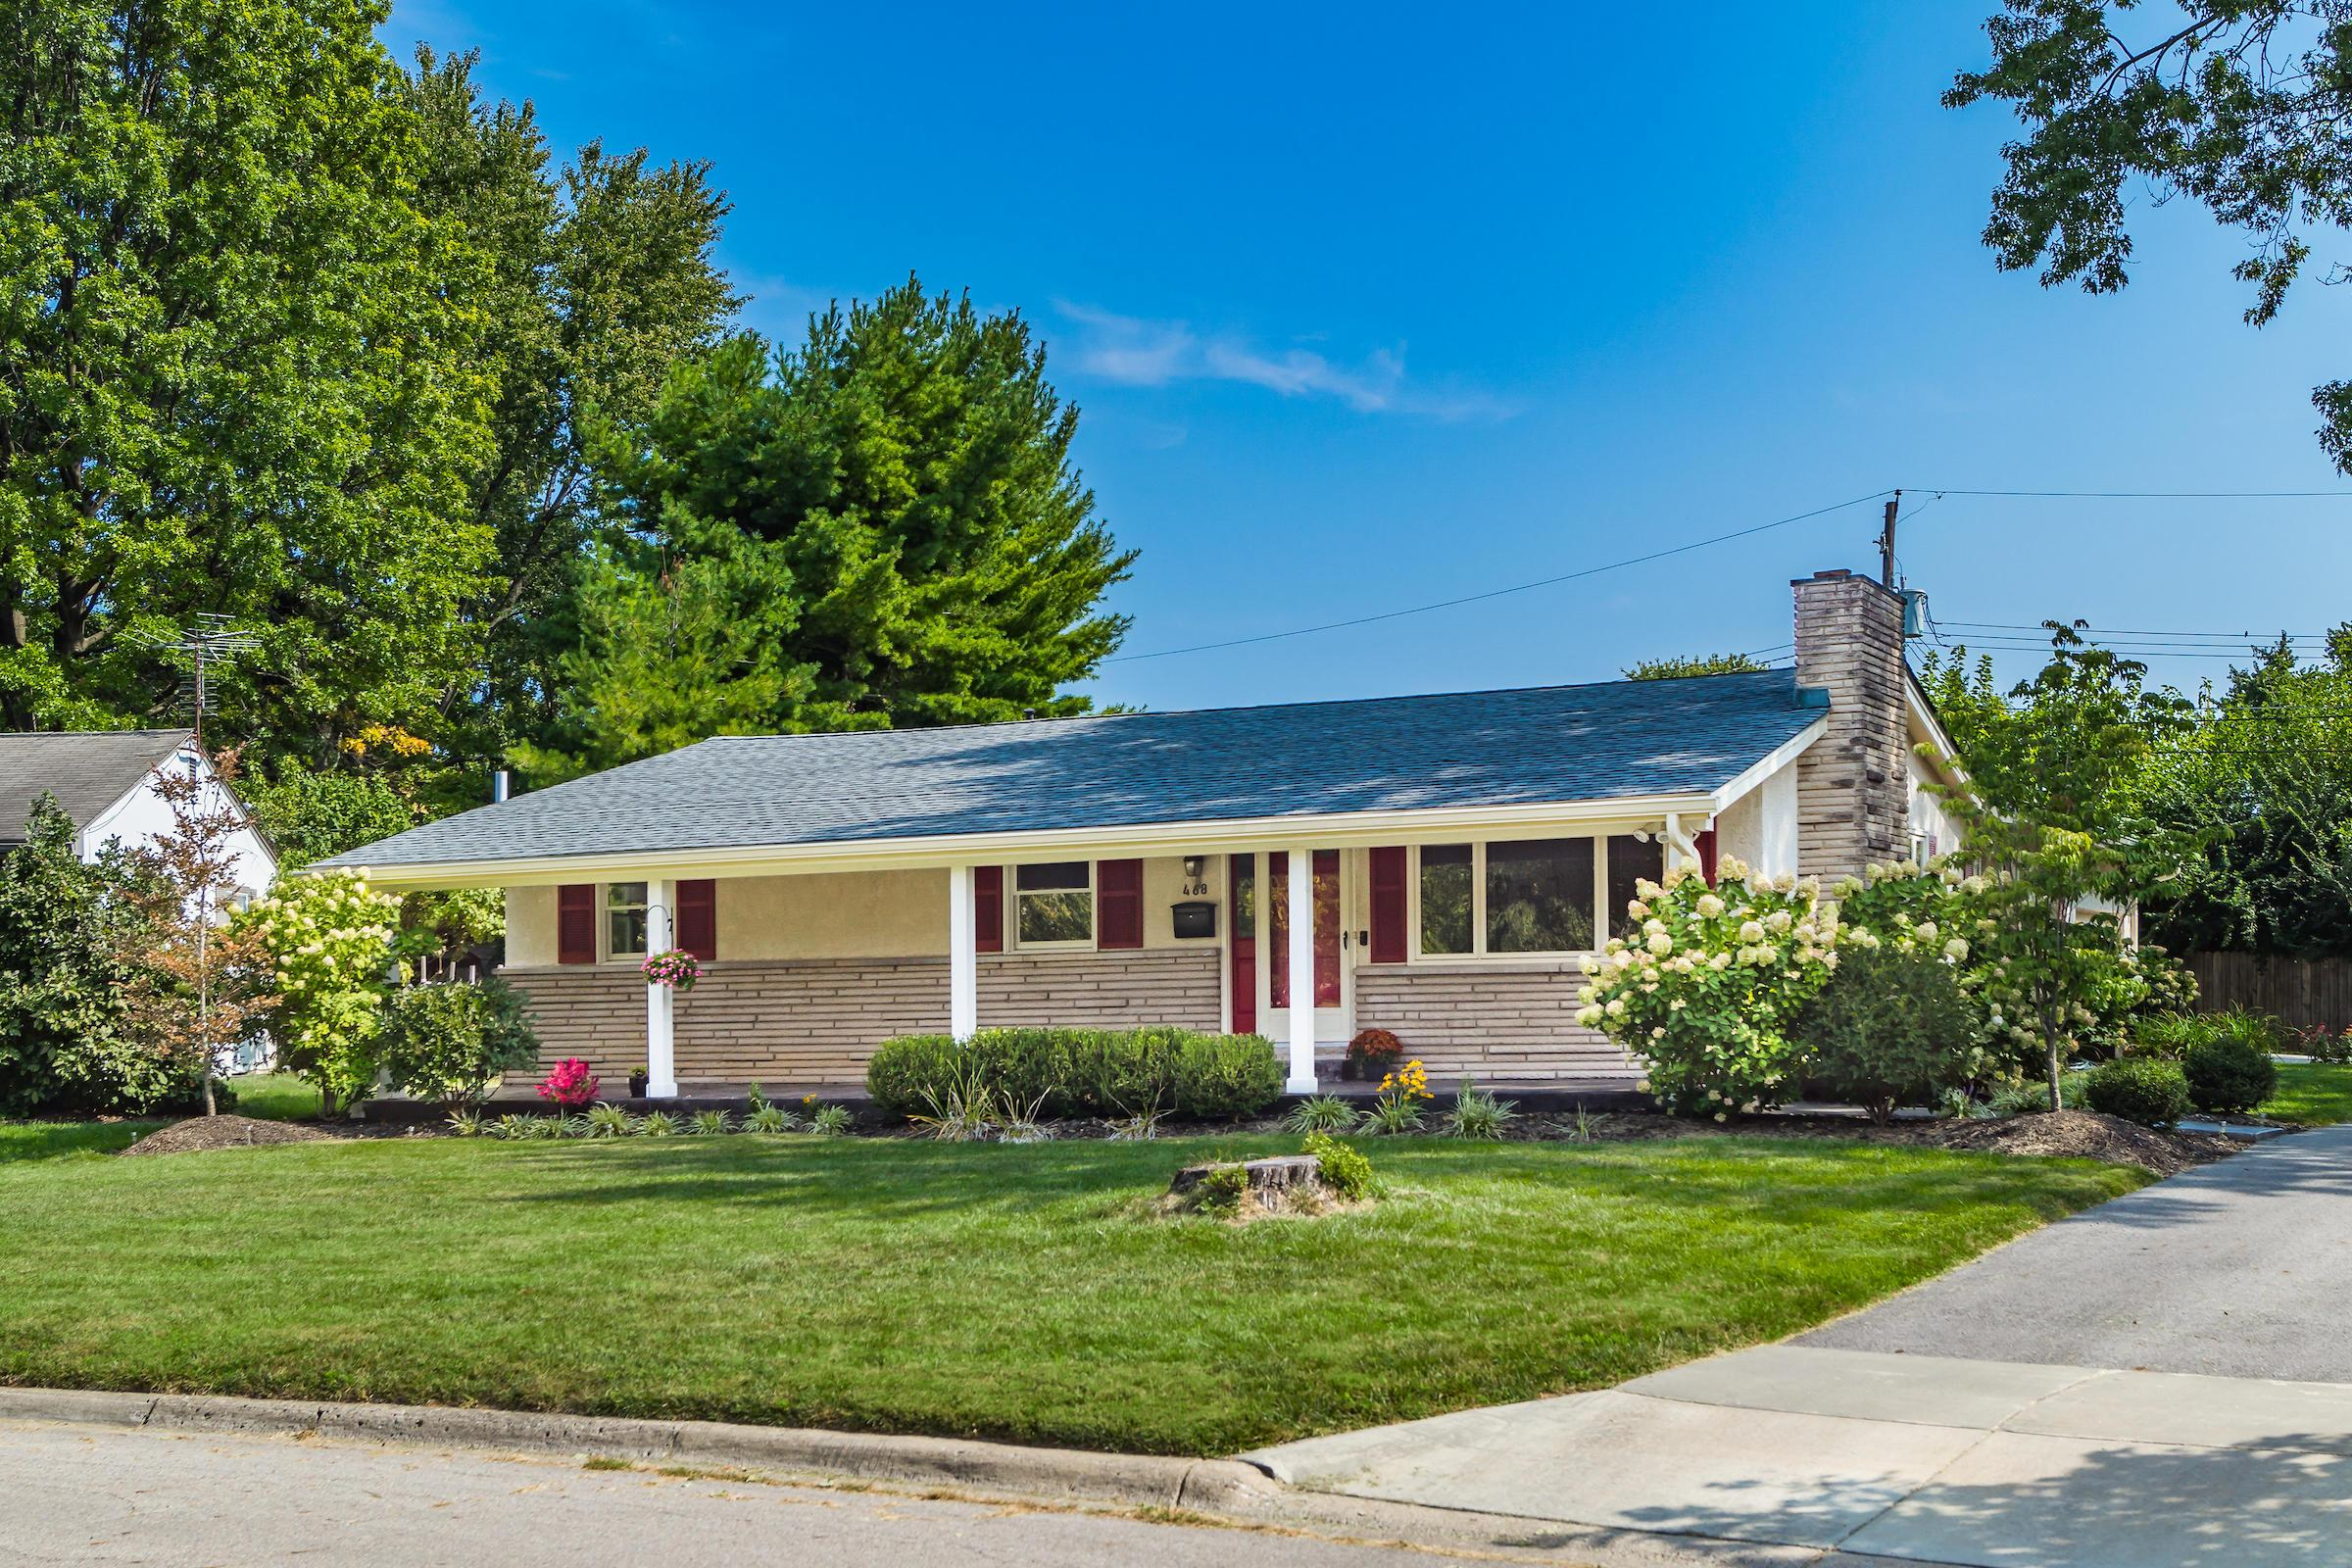 468 Crandall Drive, Worthington, Ohio 43085, 4 Bedrooms Bedrooms, ,3 BathroomsBathrooms,Residential,For Sale,Crandall,220033711